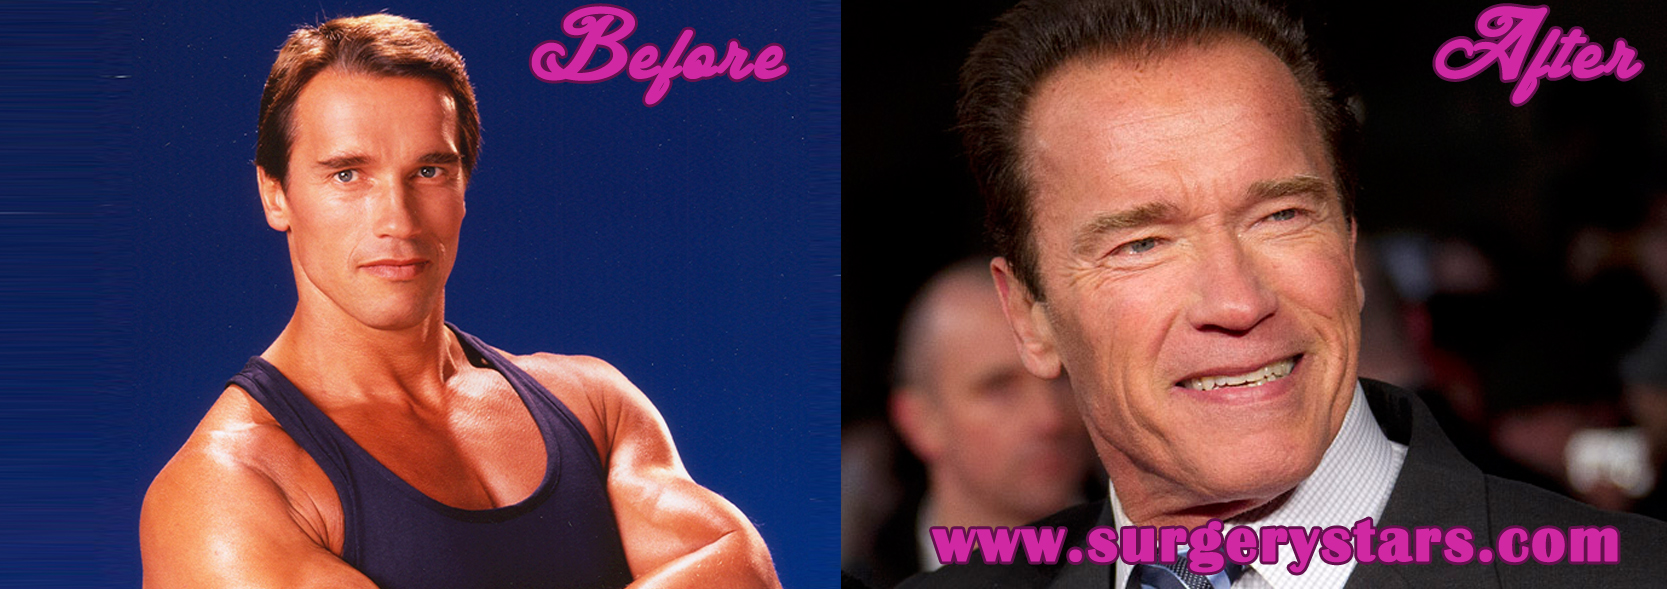 Arnold Schwarzenegger Before and After Plastic Surgery Pictures